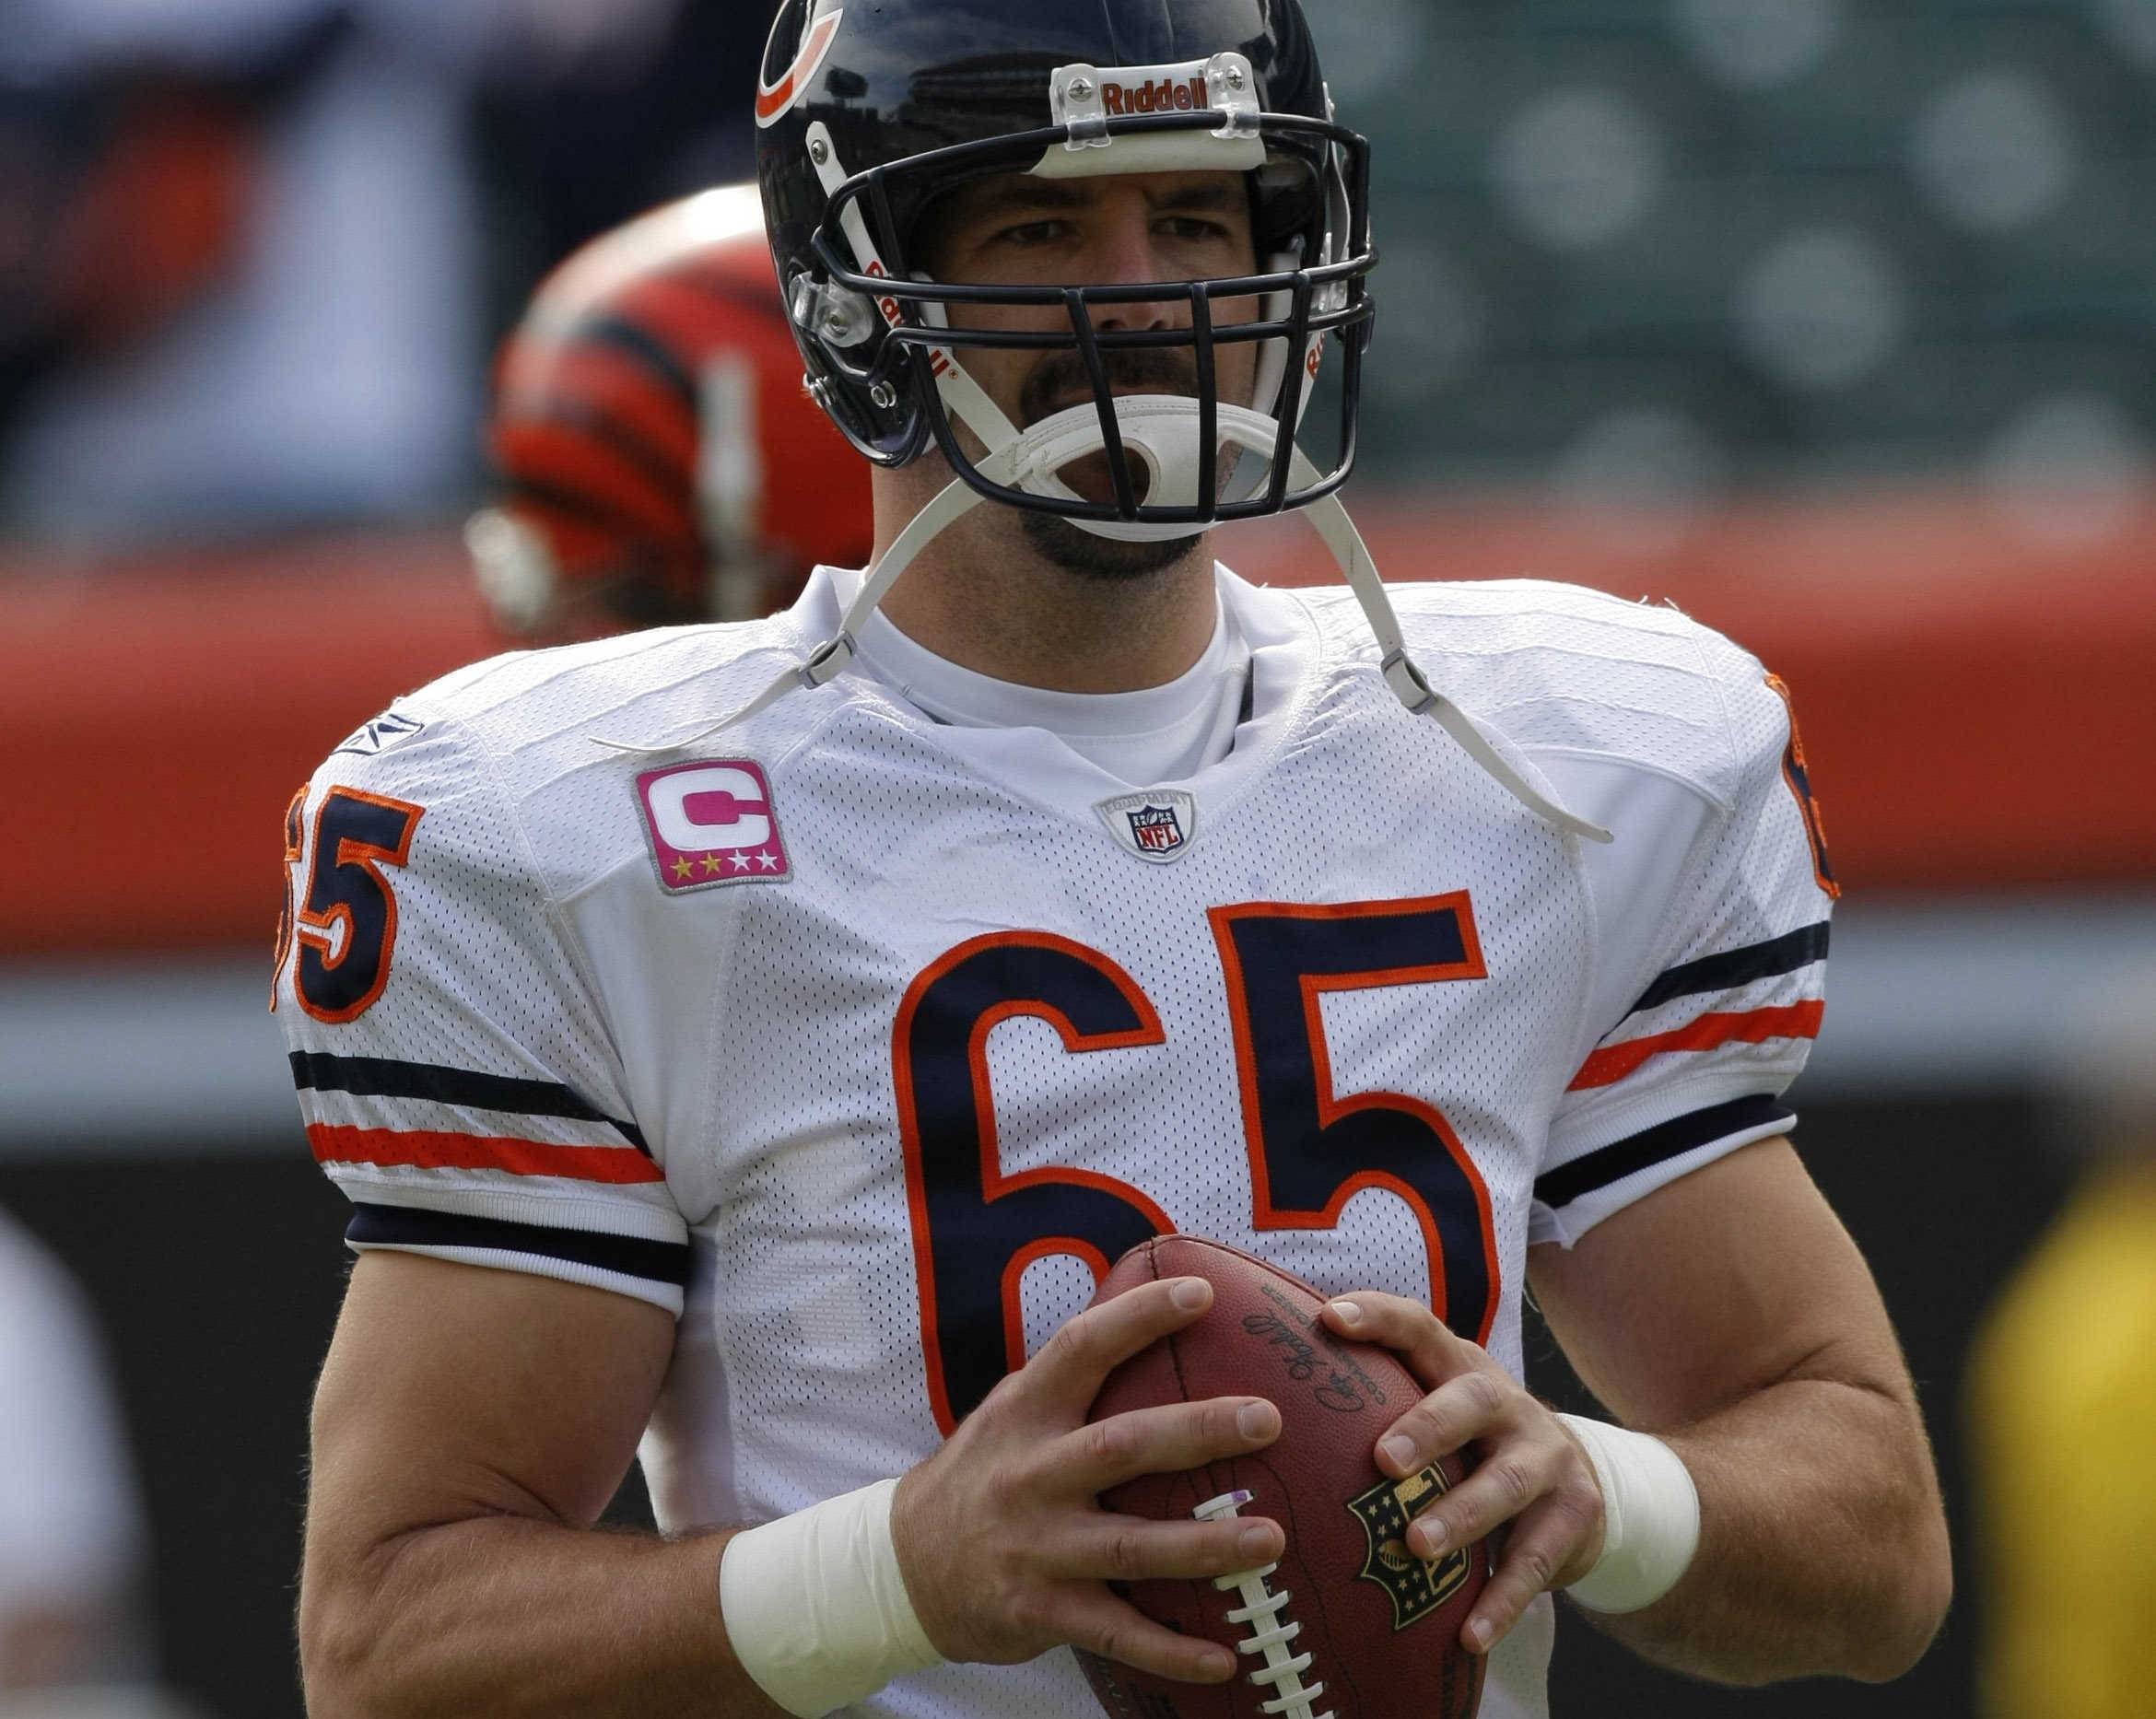 Long-snapper Patrick Mannelly, 245 games, is tops among most games played in Bears history